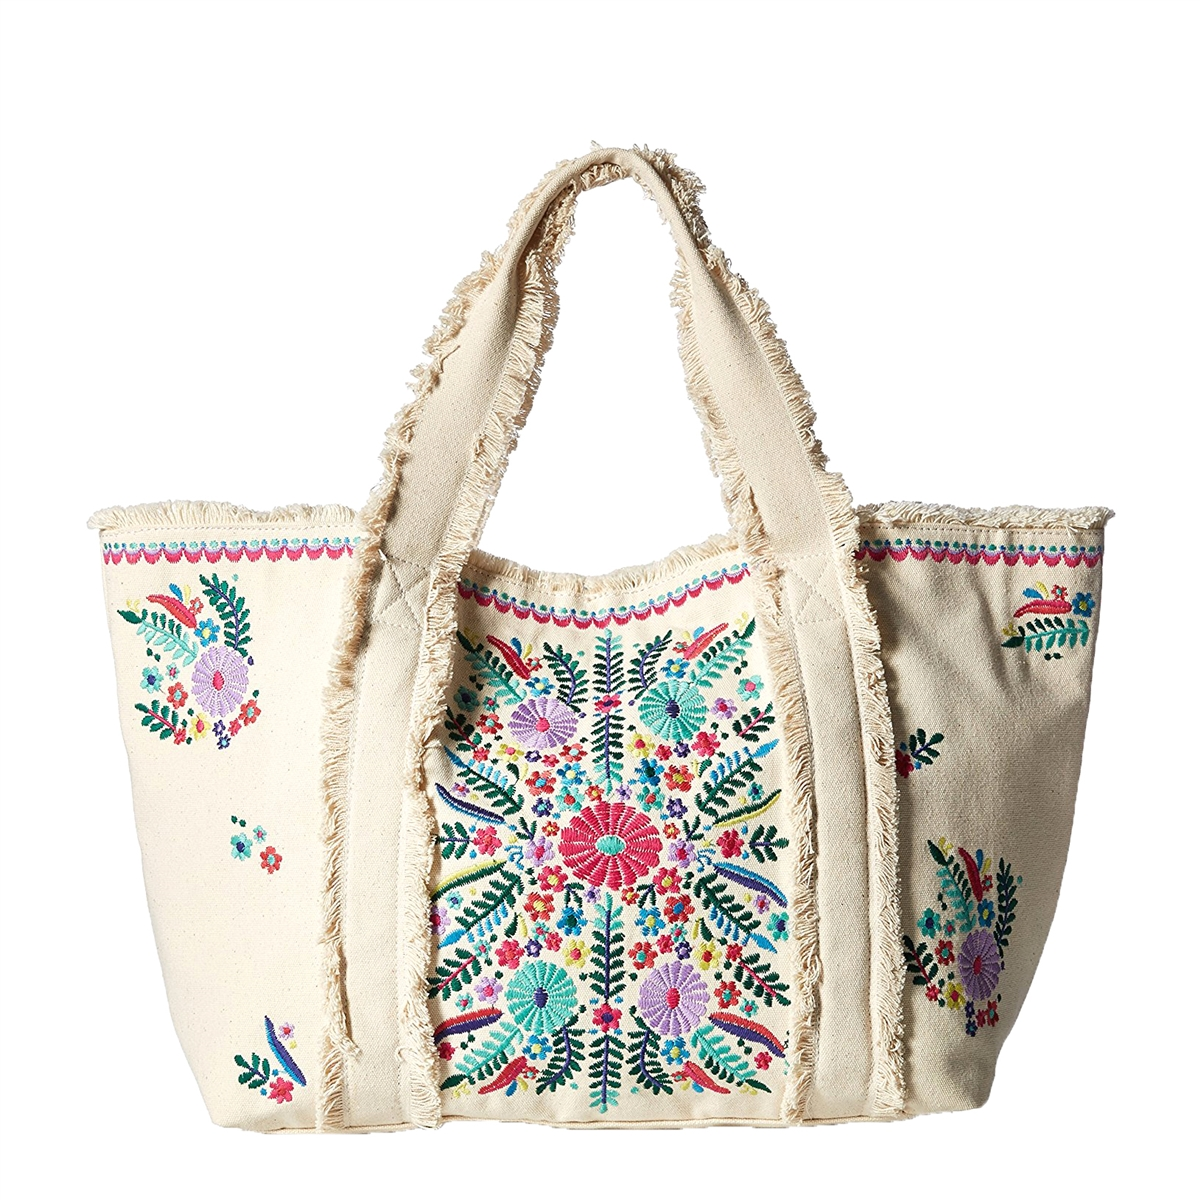 e951aa29635 Steven By Steve Madden Kade Colorfully Embroidered Tote, Natural